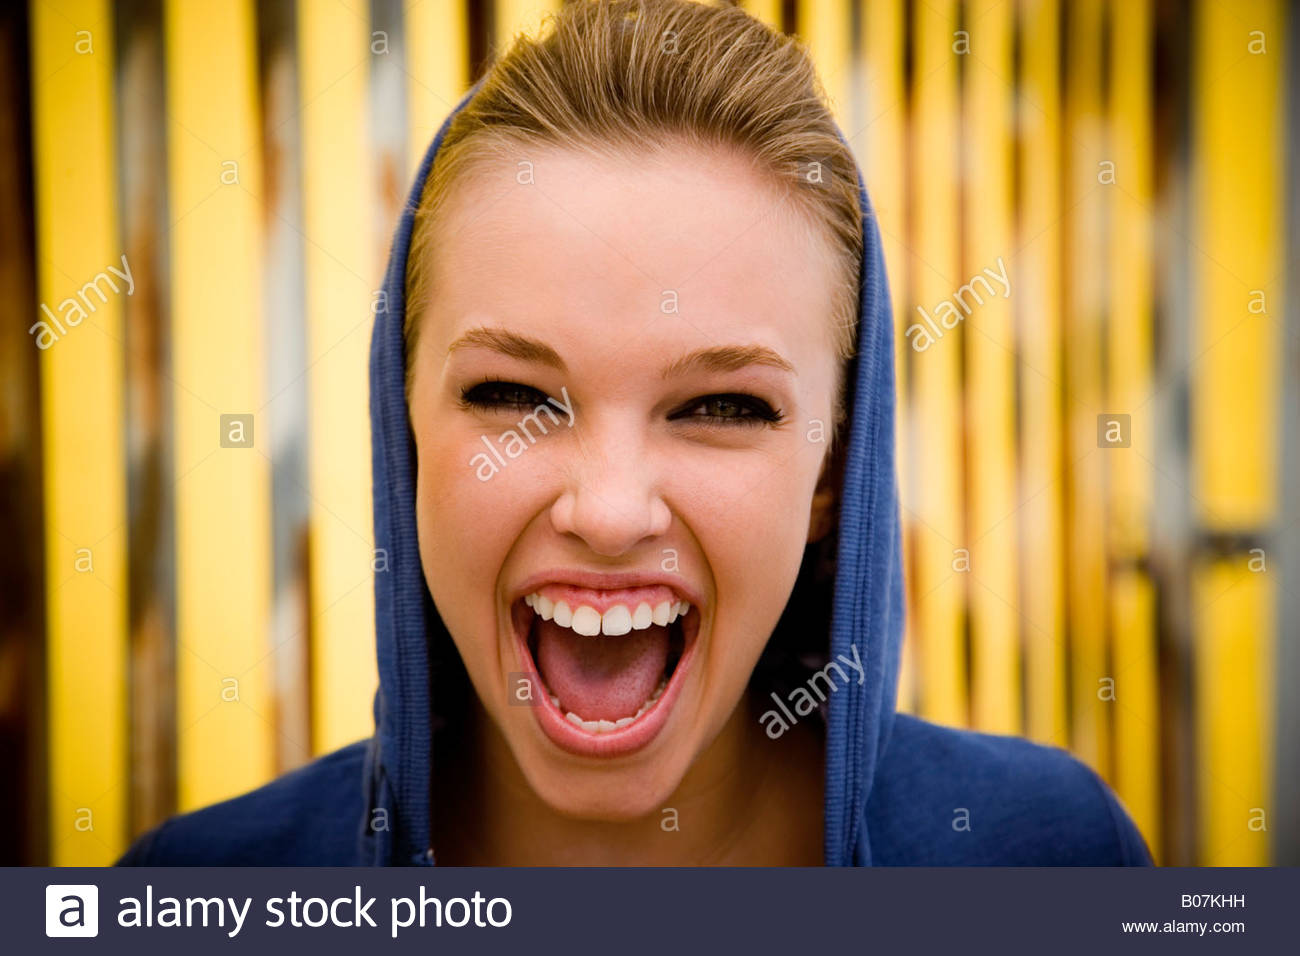 Portrait of a girl leaning against railing bars screaming - Stock Image